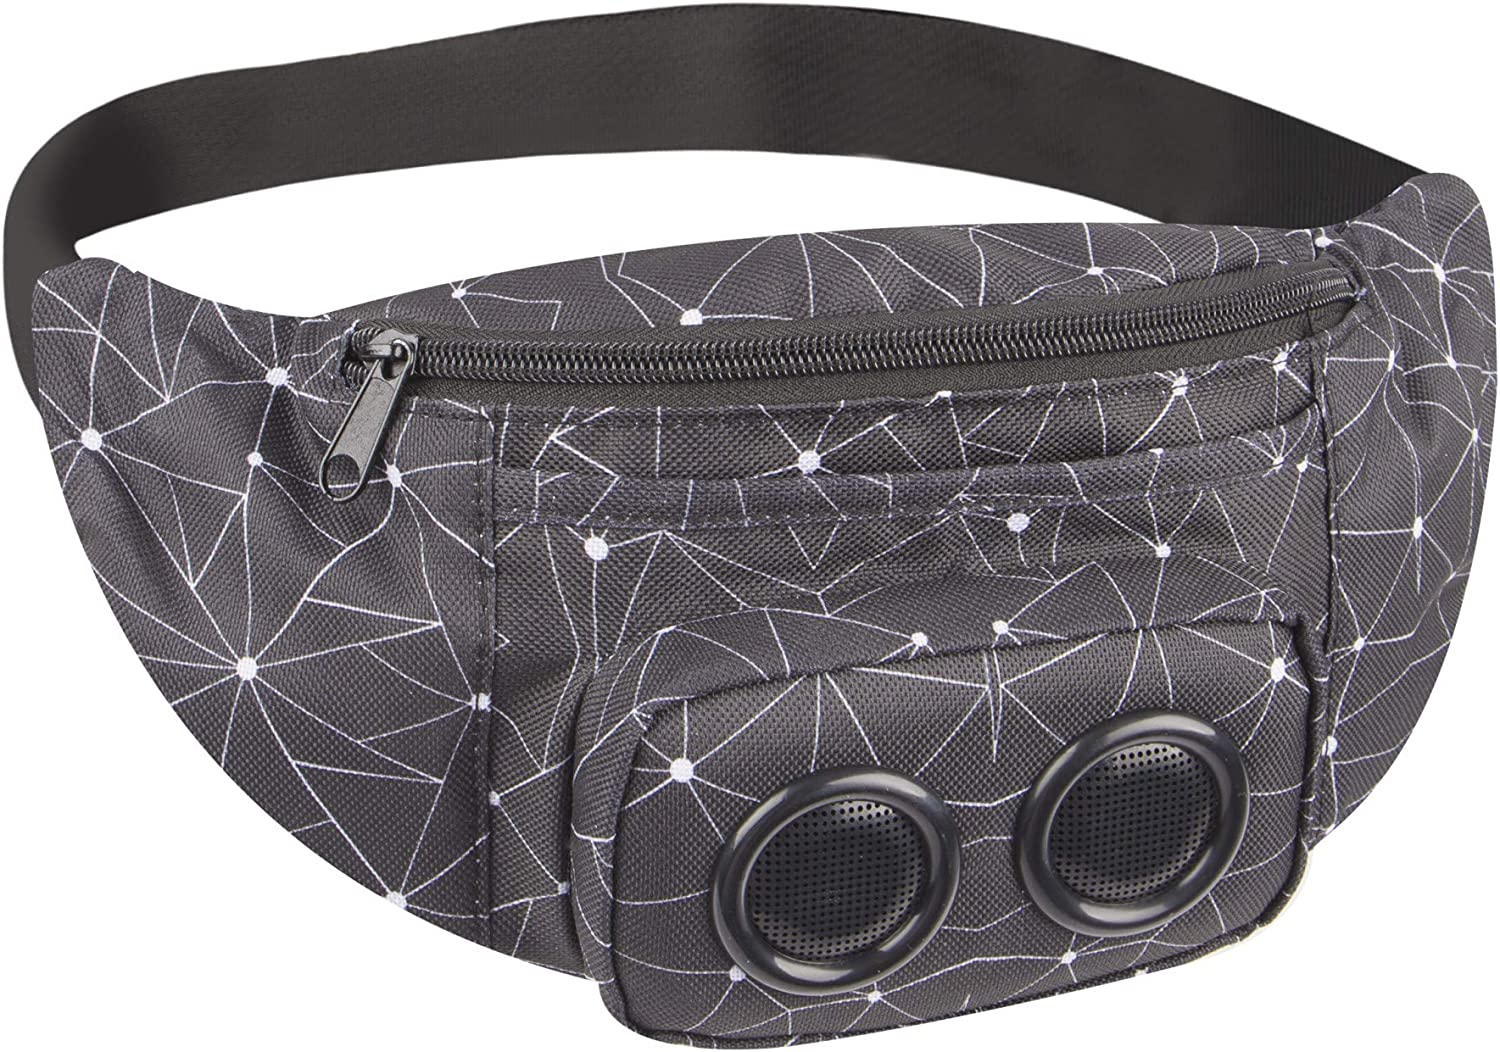 Vivitar Jam Bag Wireless Speaker Fanny Pack Bluetooth Speakers Rechargeable Battery Water-Resistant Outdoor Speakers Fun and Stylish Fanny Packs for Men /& Women